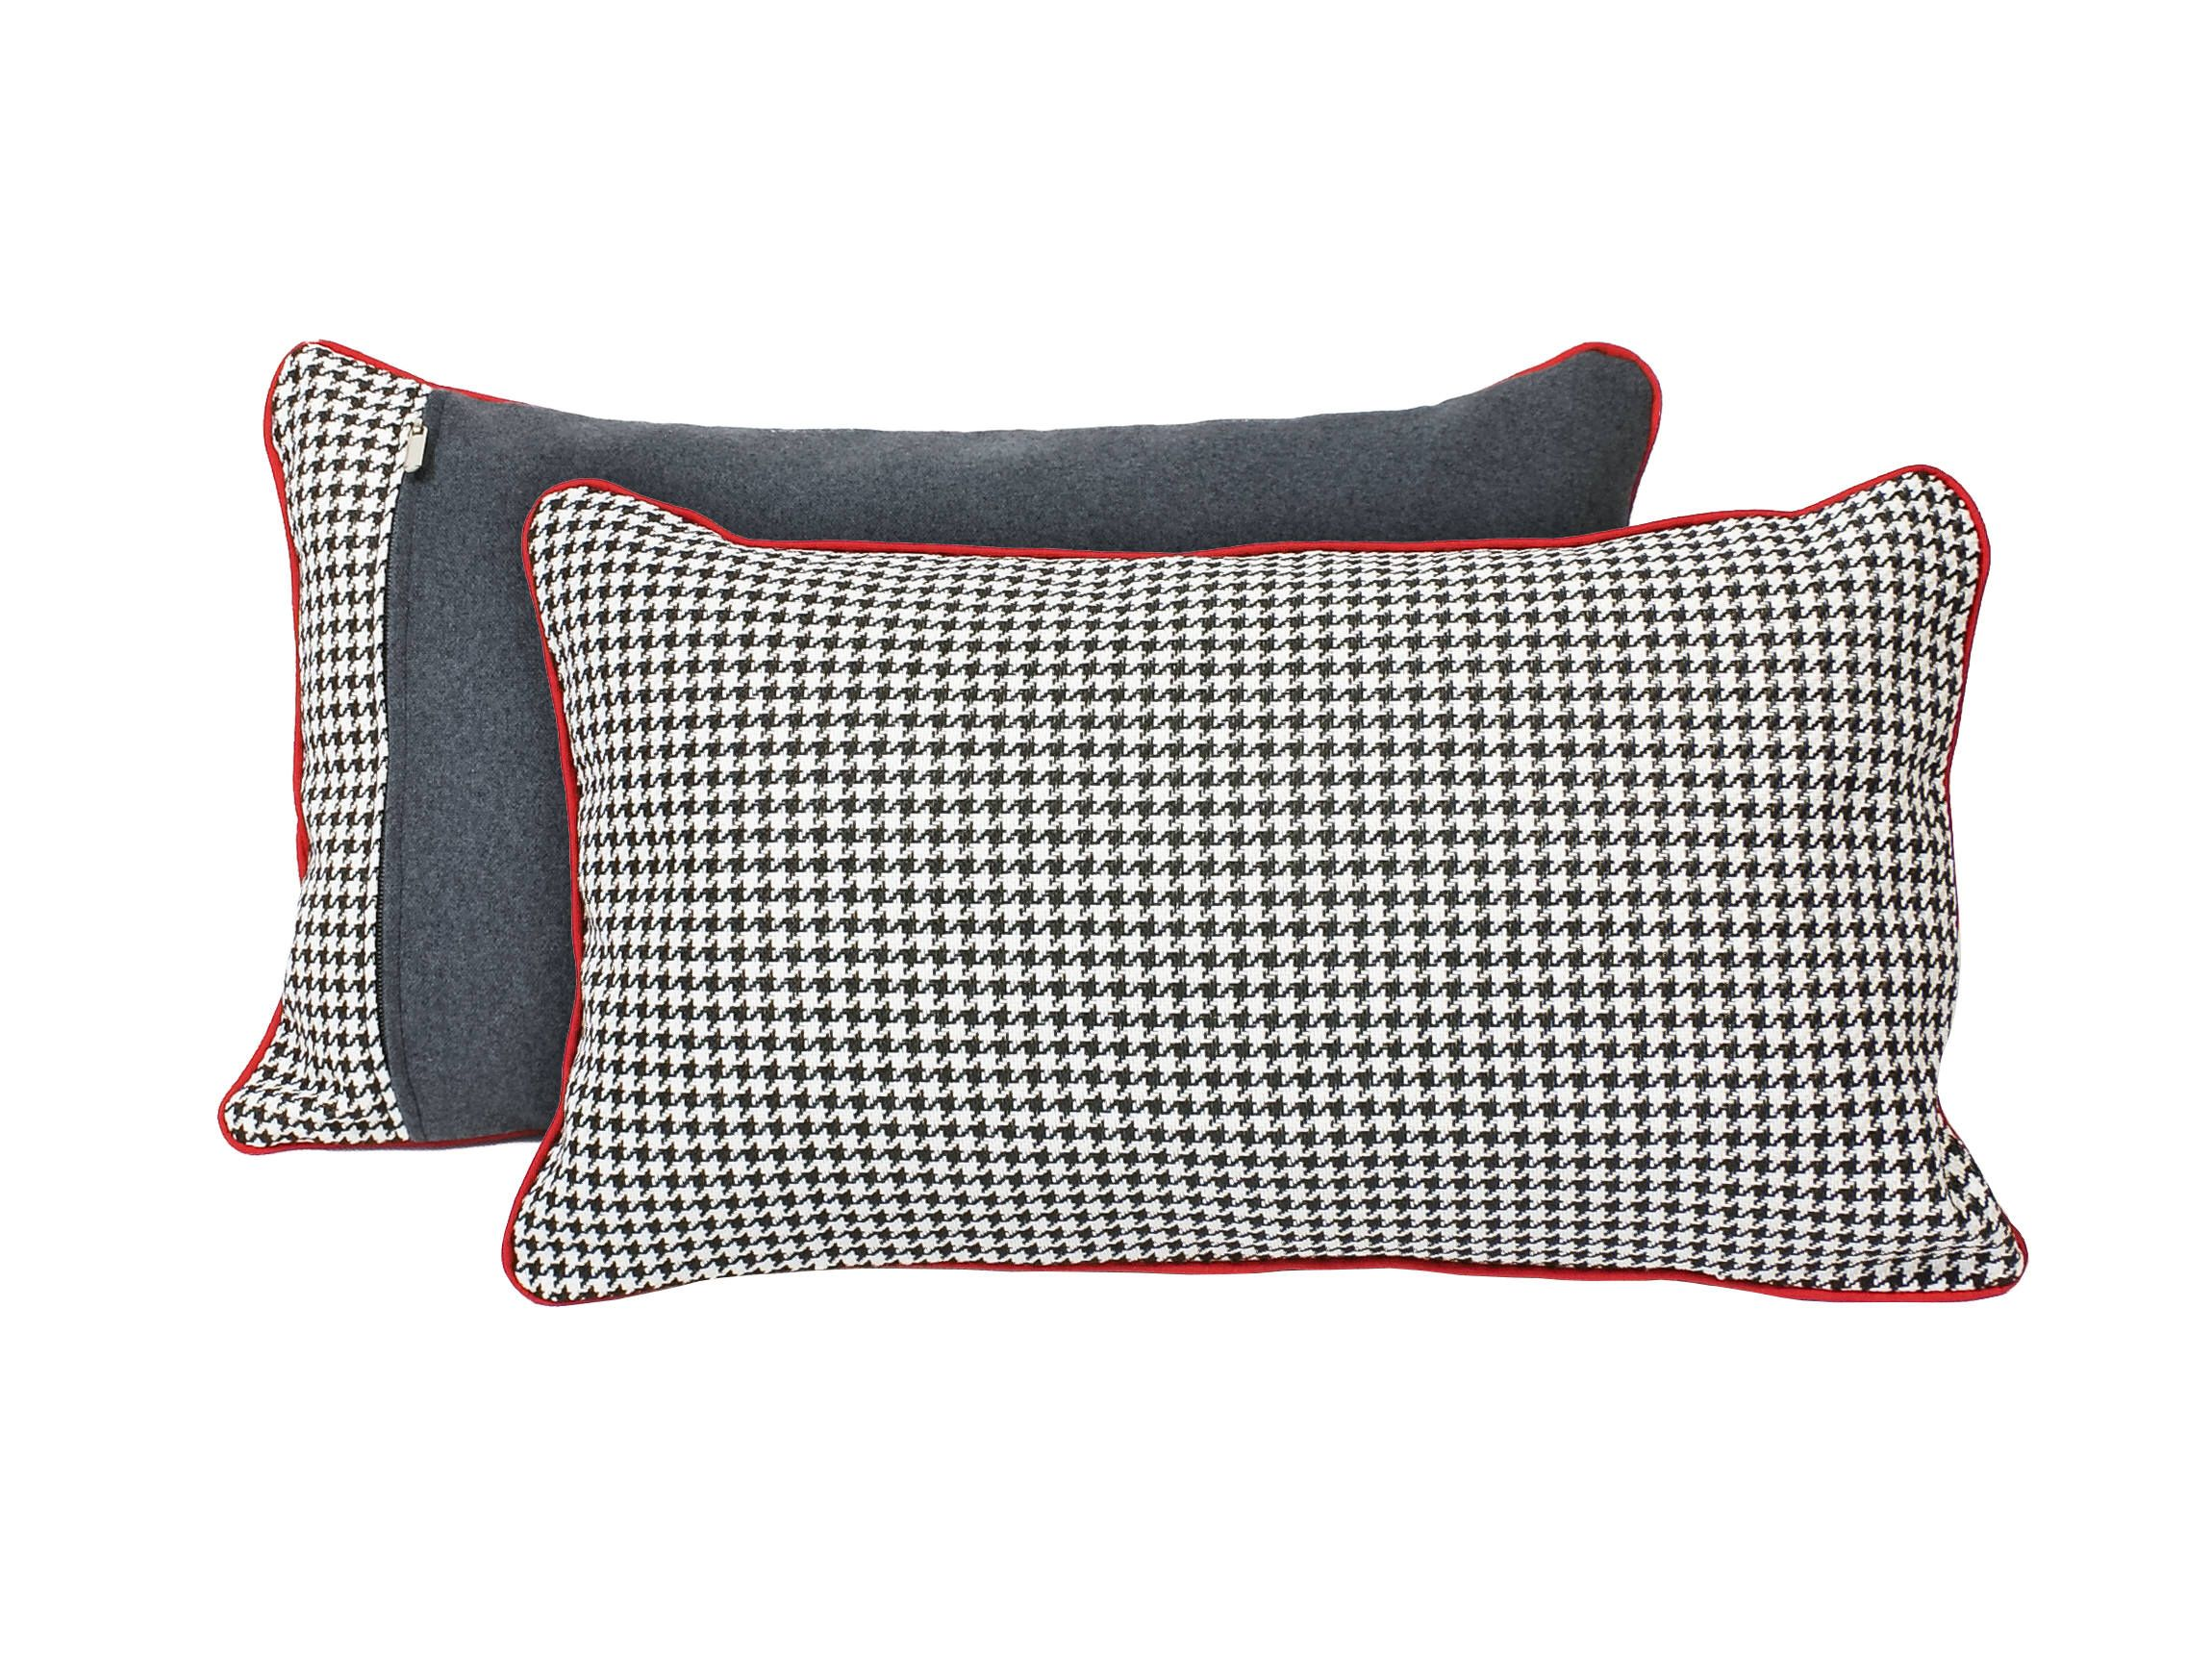 Black and white houndstooth pillow